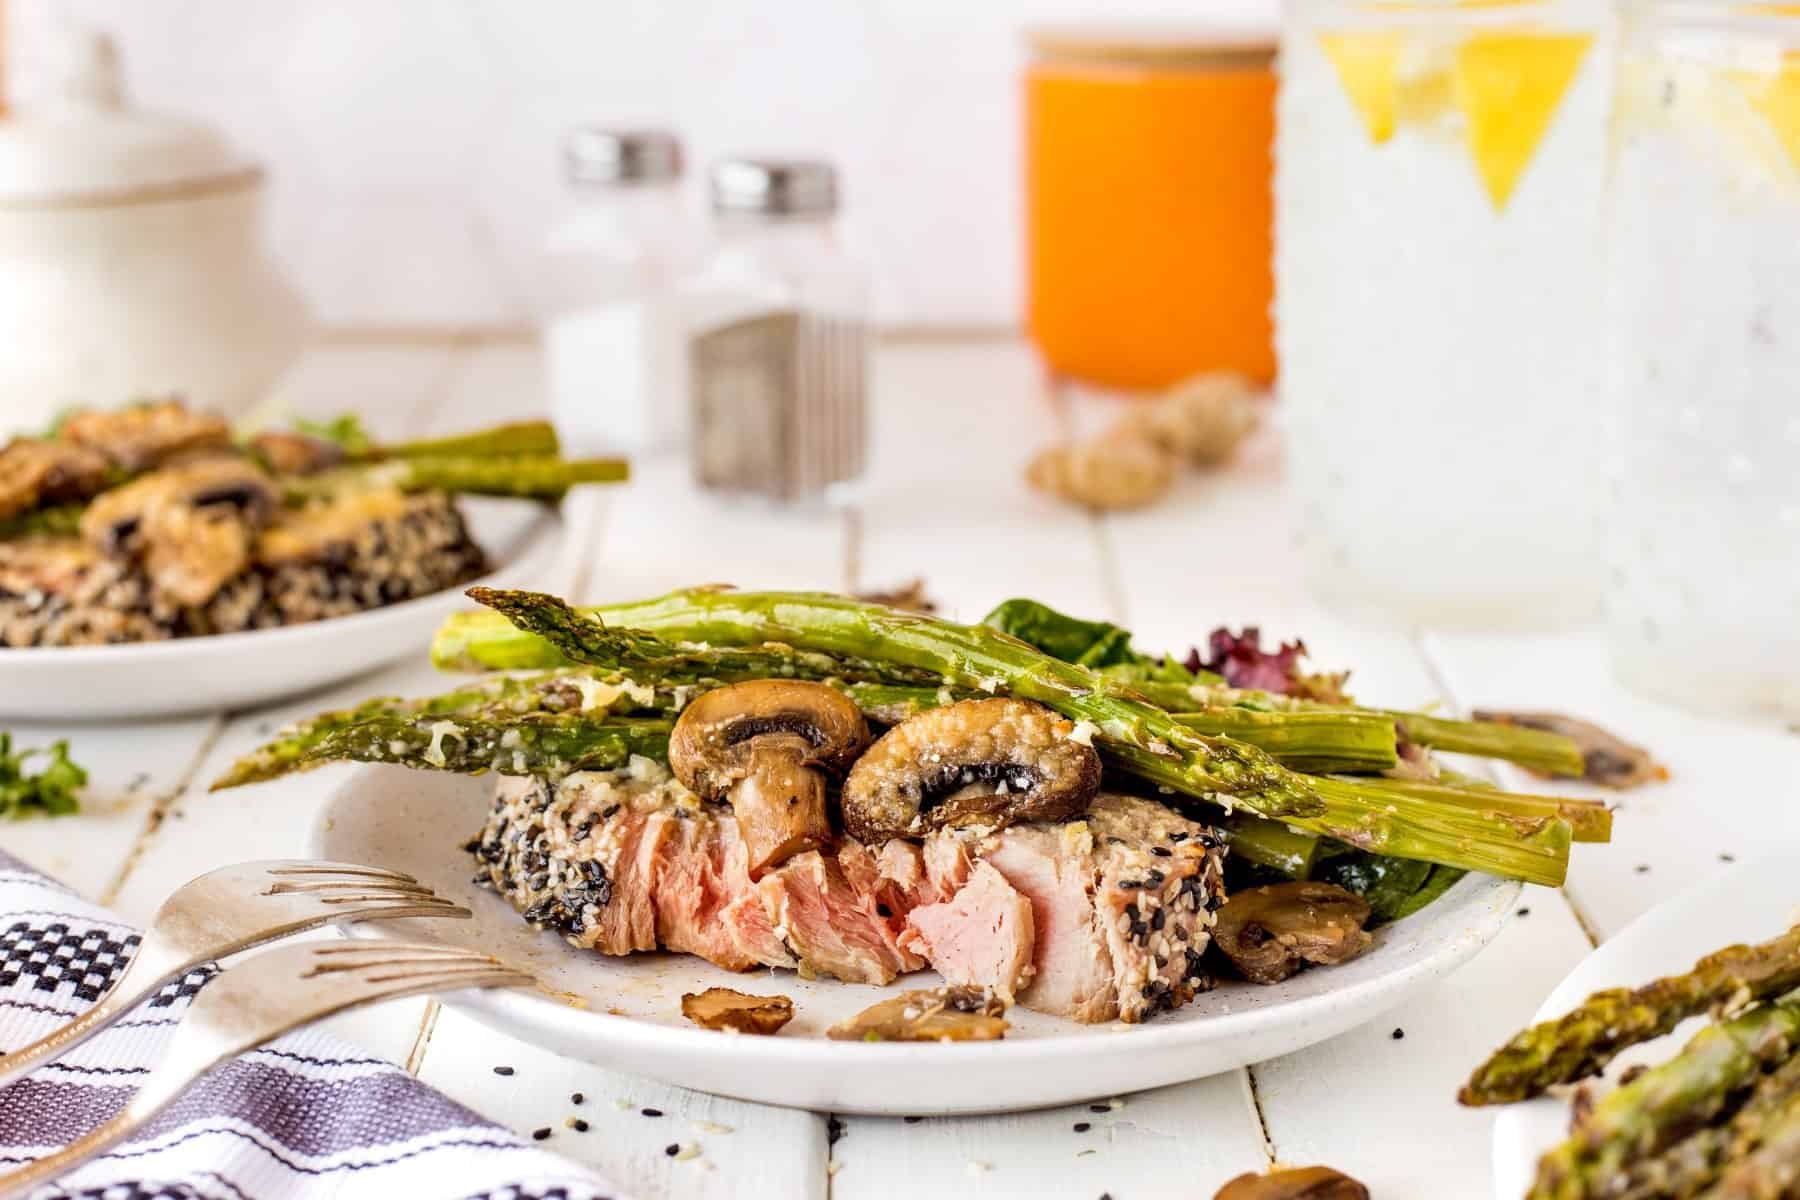 Horizontal shot of tuna steak with mushrooms and asparagus on a plate